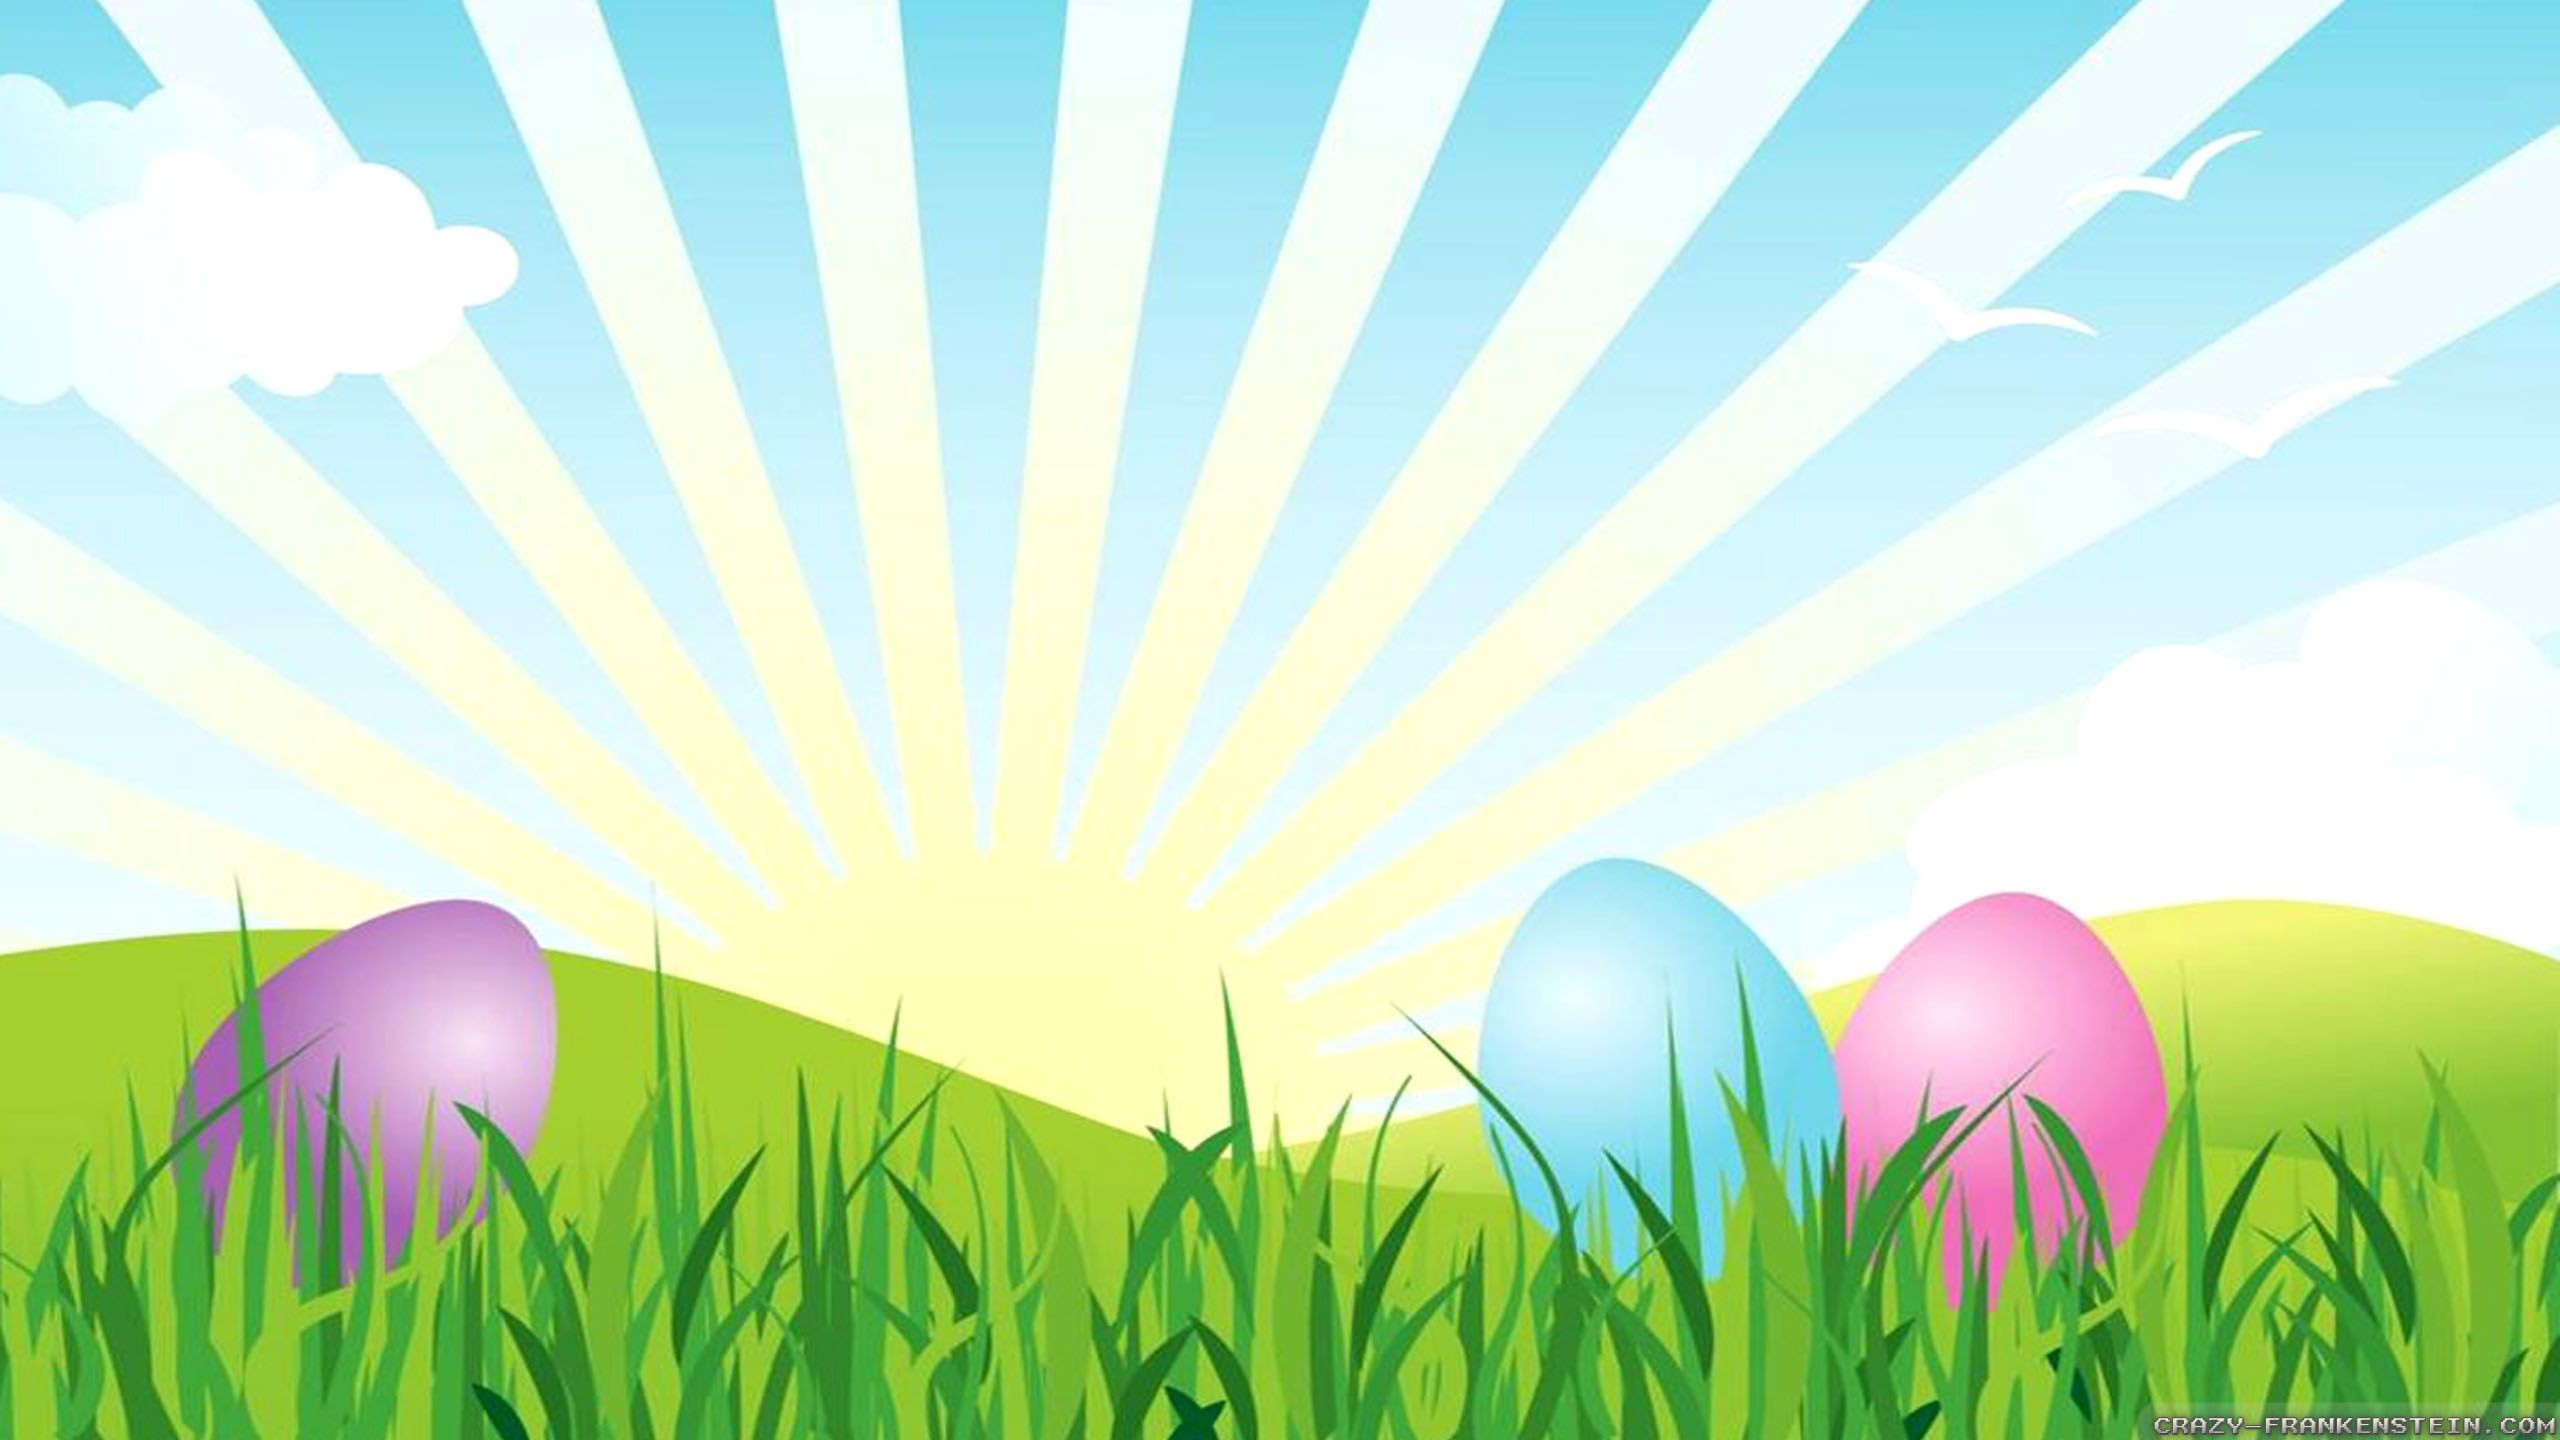 Res: 2560x1440, Free Christian Easter Wallpapers Wallpaper 1024×734 Easter Wallpaper (43  Wallpapers) | Adorable